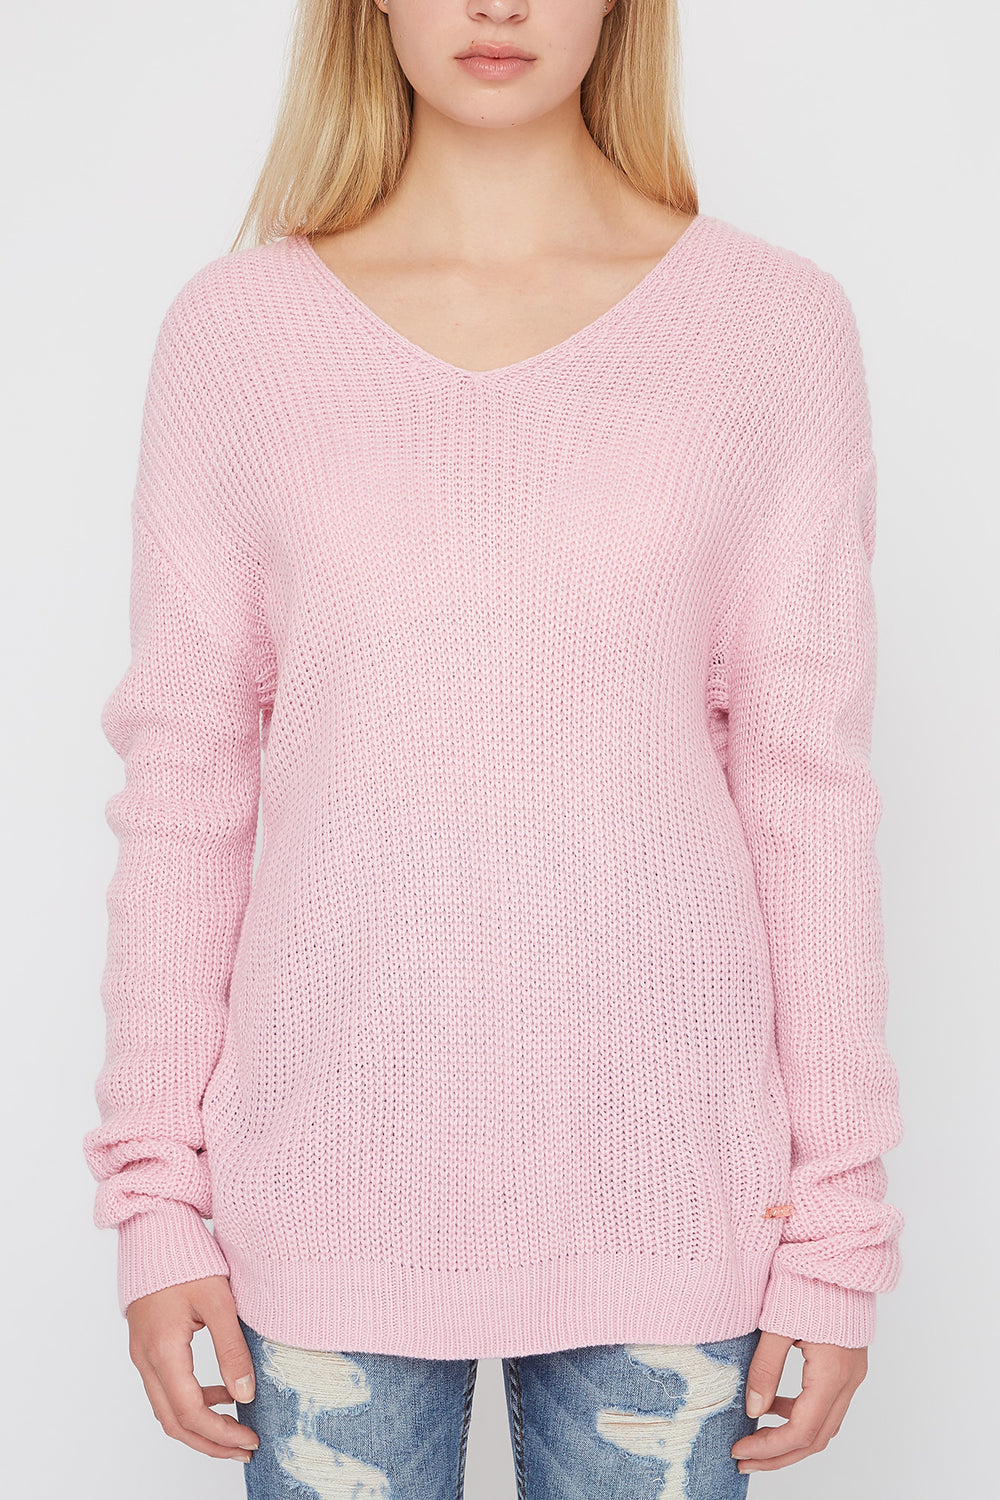 Zoo York Womens Knit Back Knot Sweater Light Pink